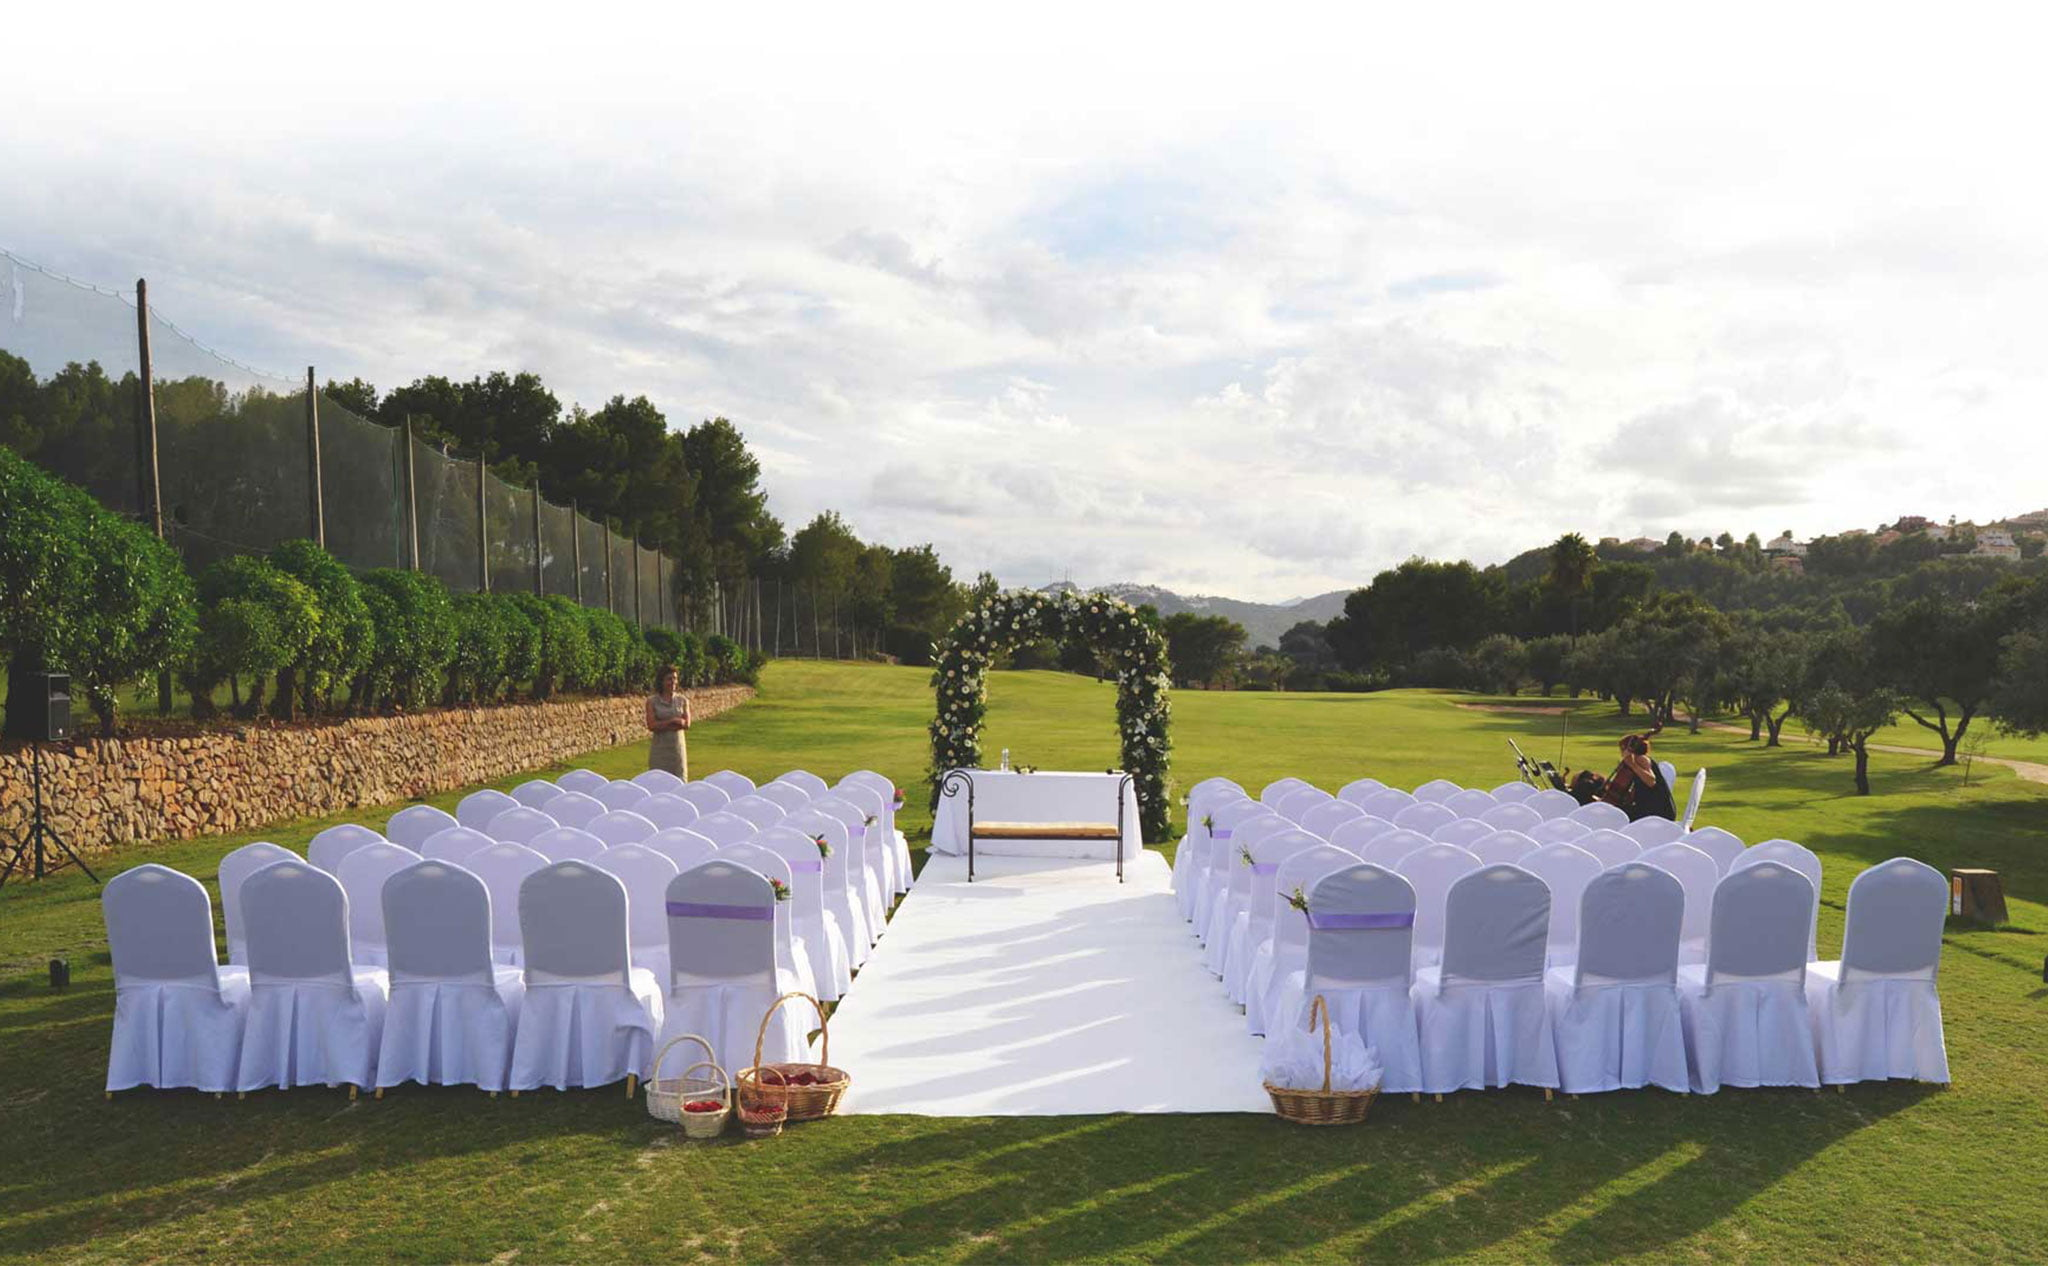 Boda preparada junto al campo de golf –  Hotel Dénia Marriott La Sella Golf Resort & Spa